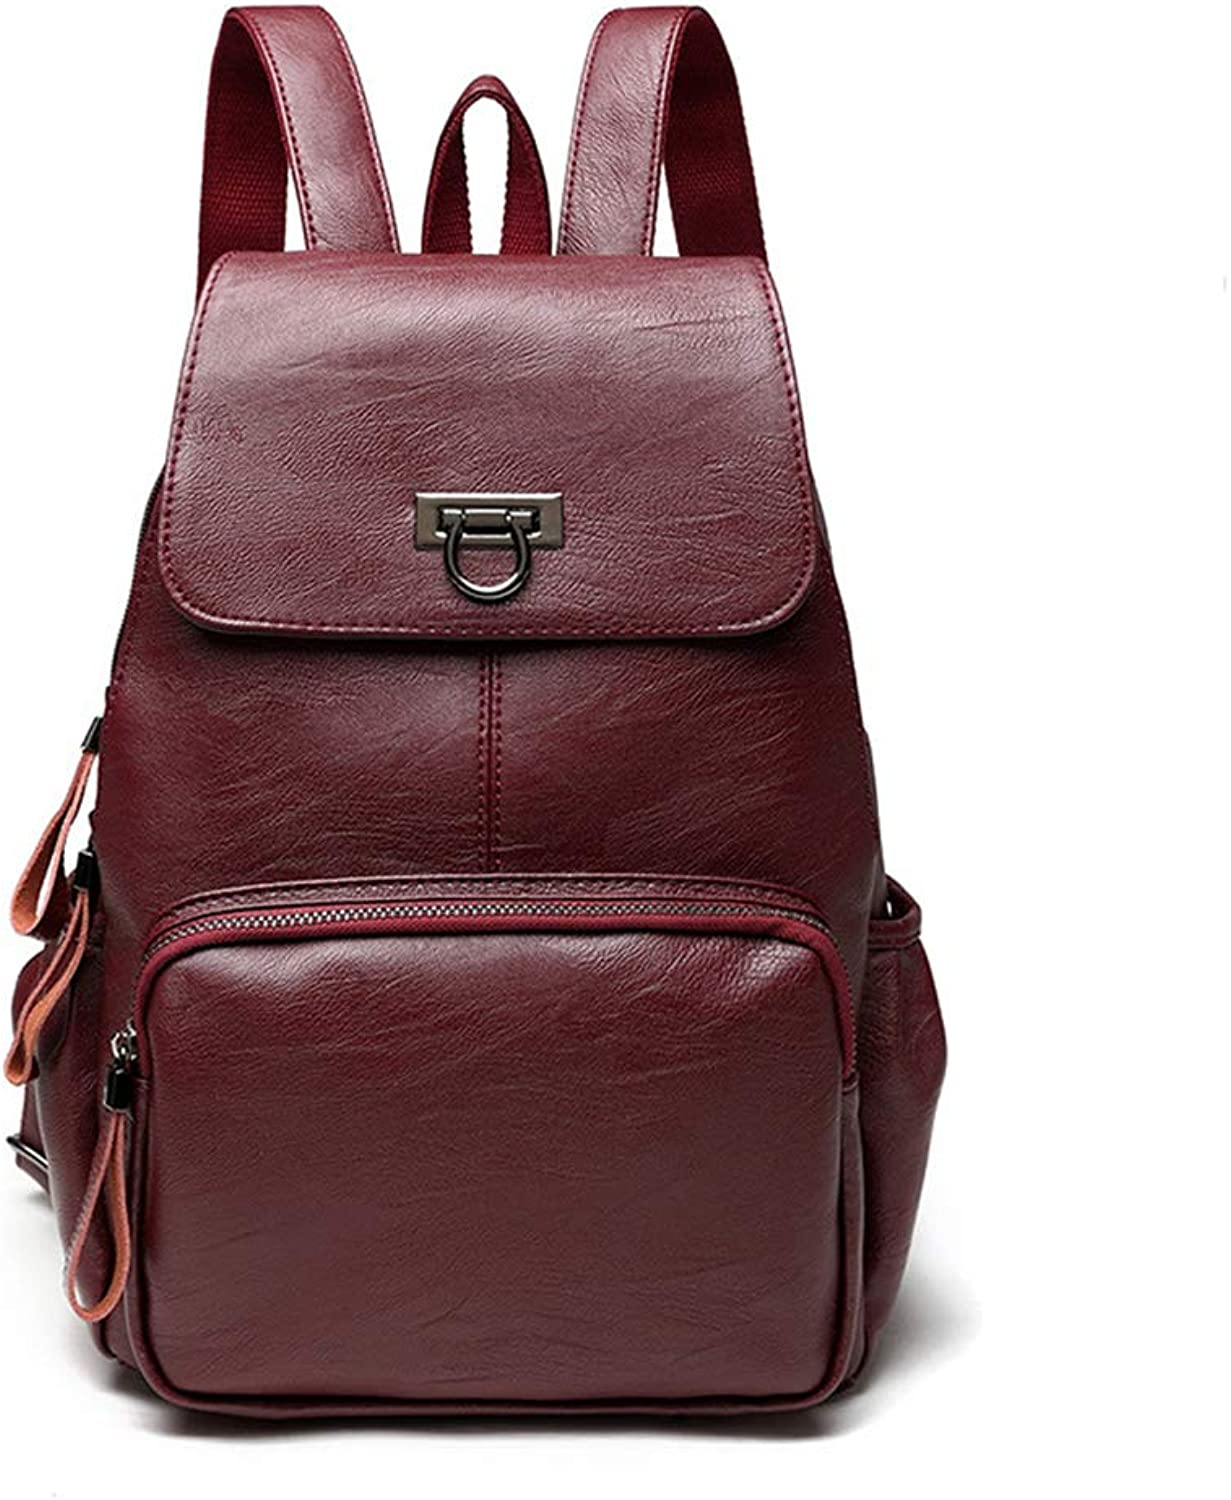 Women Backpack Leather Backpack Casual Girls Shoulder Schoolbag School Backpacks Red Leather Backpack for Women Mini Daypack Small Fashion Purse Travel Bag